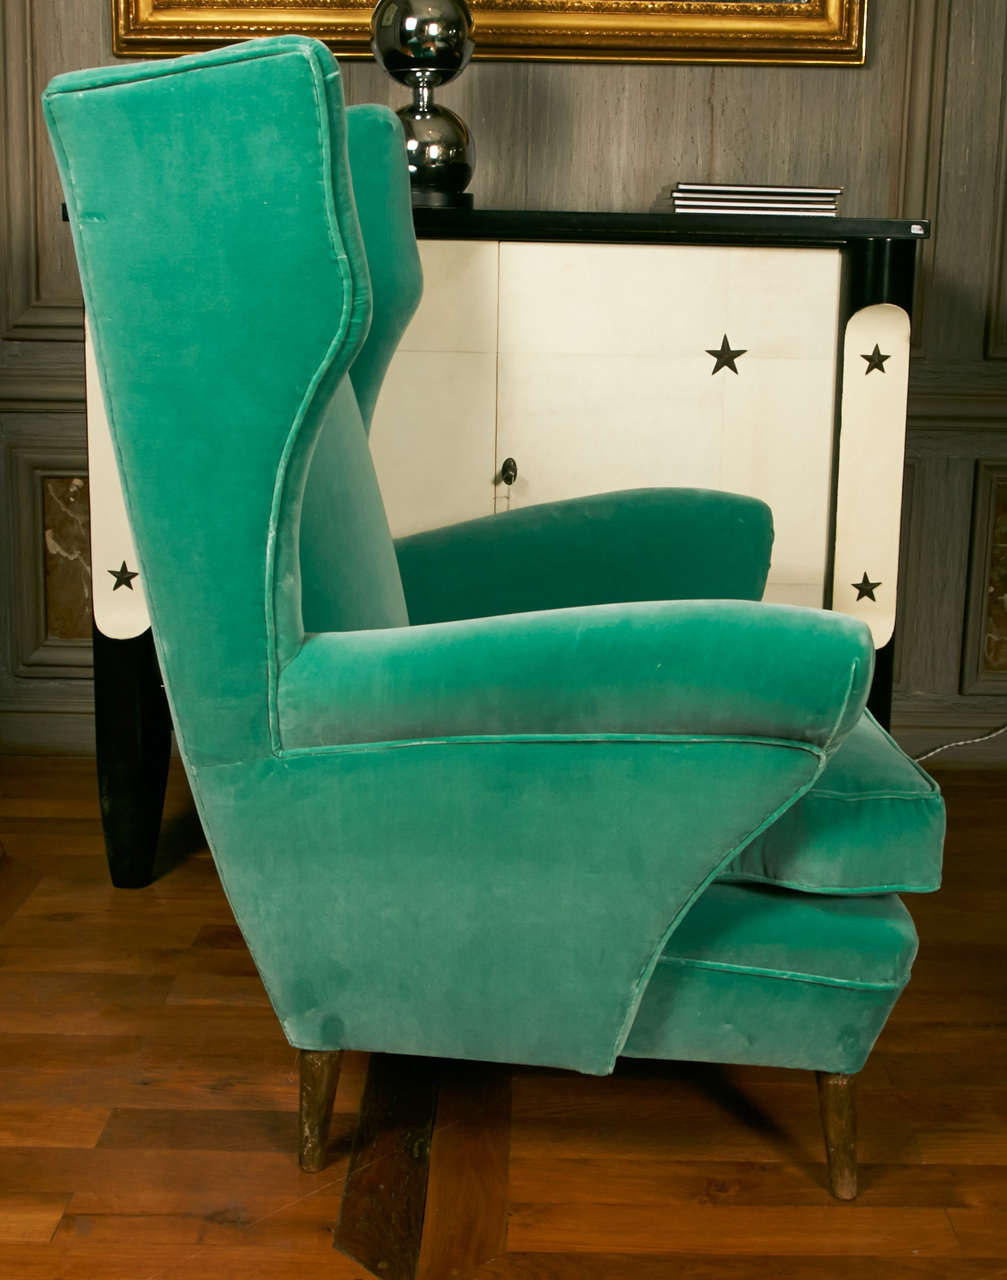 Modern Comfortable Pair of Green Armchairs with Rubelli Velvet Upholstery, Italy, 1960